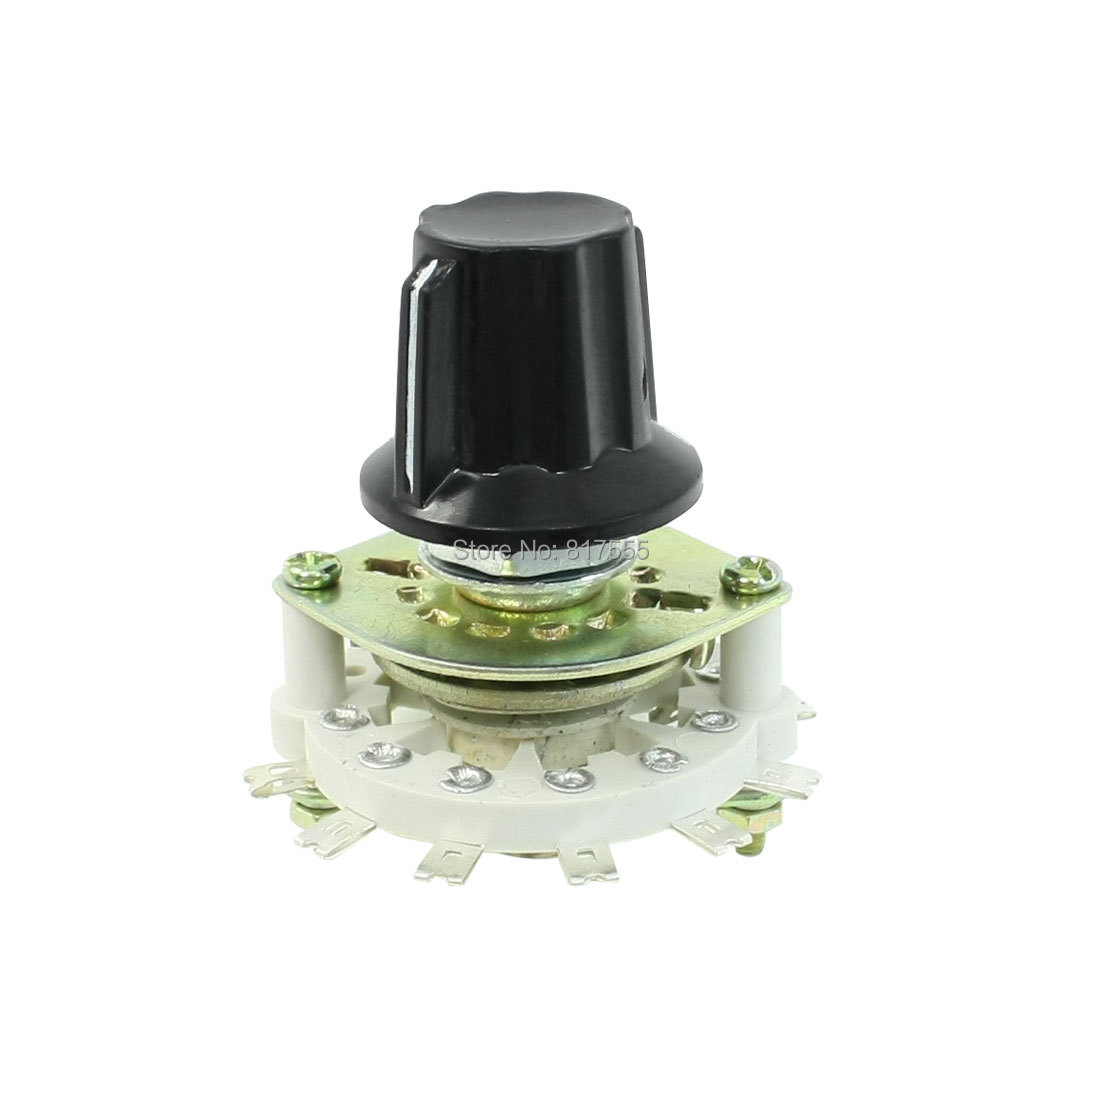 Plastic Knob 1 Pole 6 Throw Band Channel Rotary Switch Selector(China (Mainland))